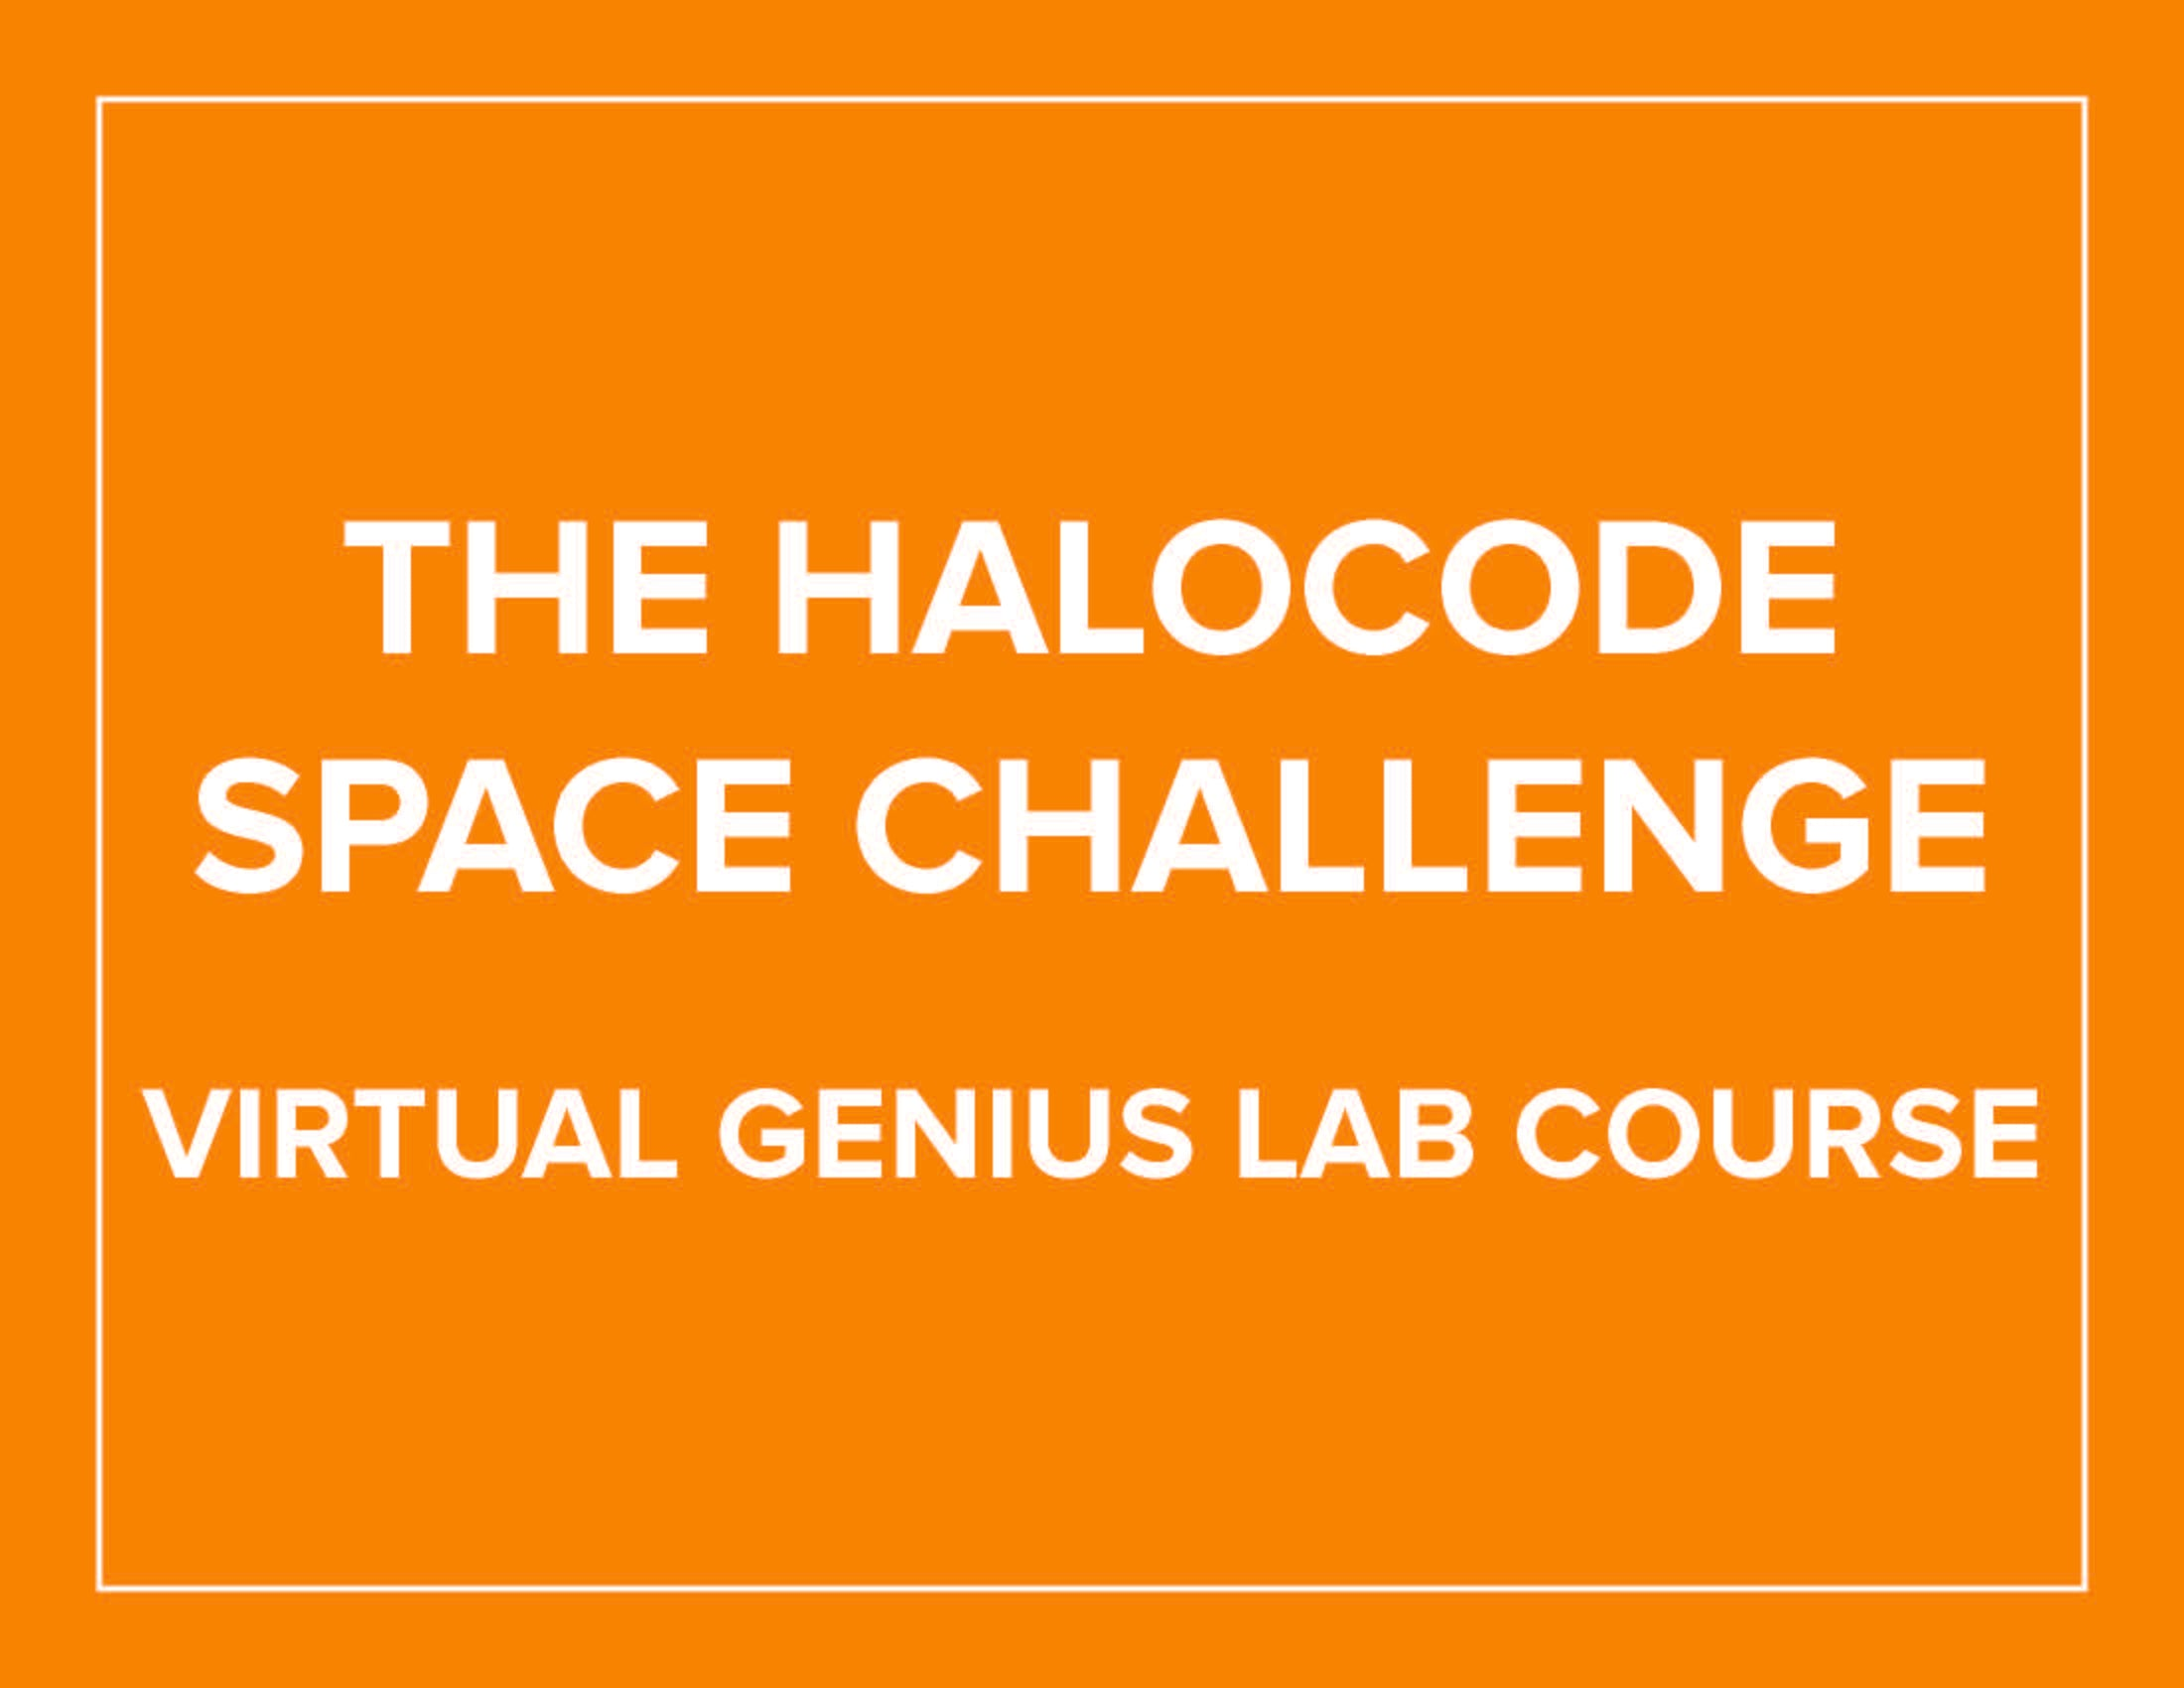 The HaloCode Space Challenge-Virtual Genius Lab Course